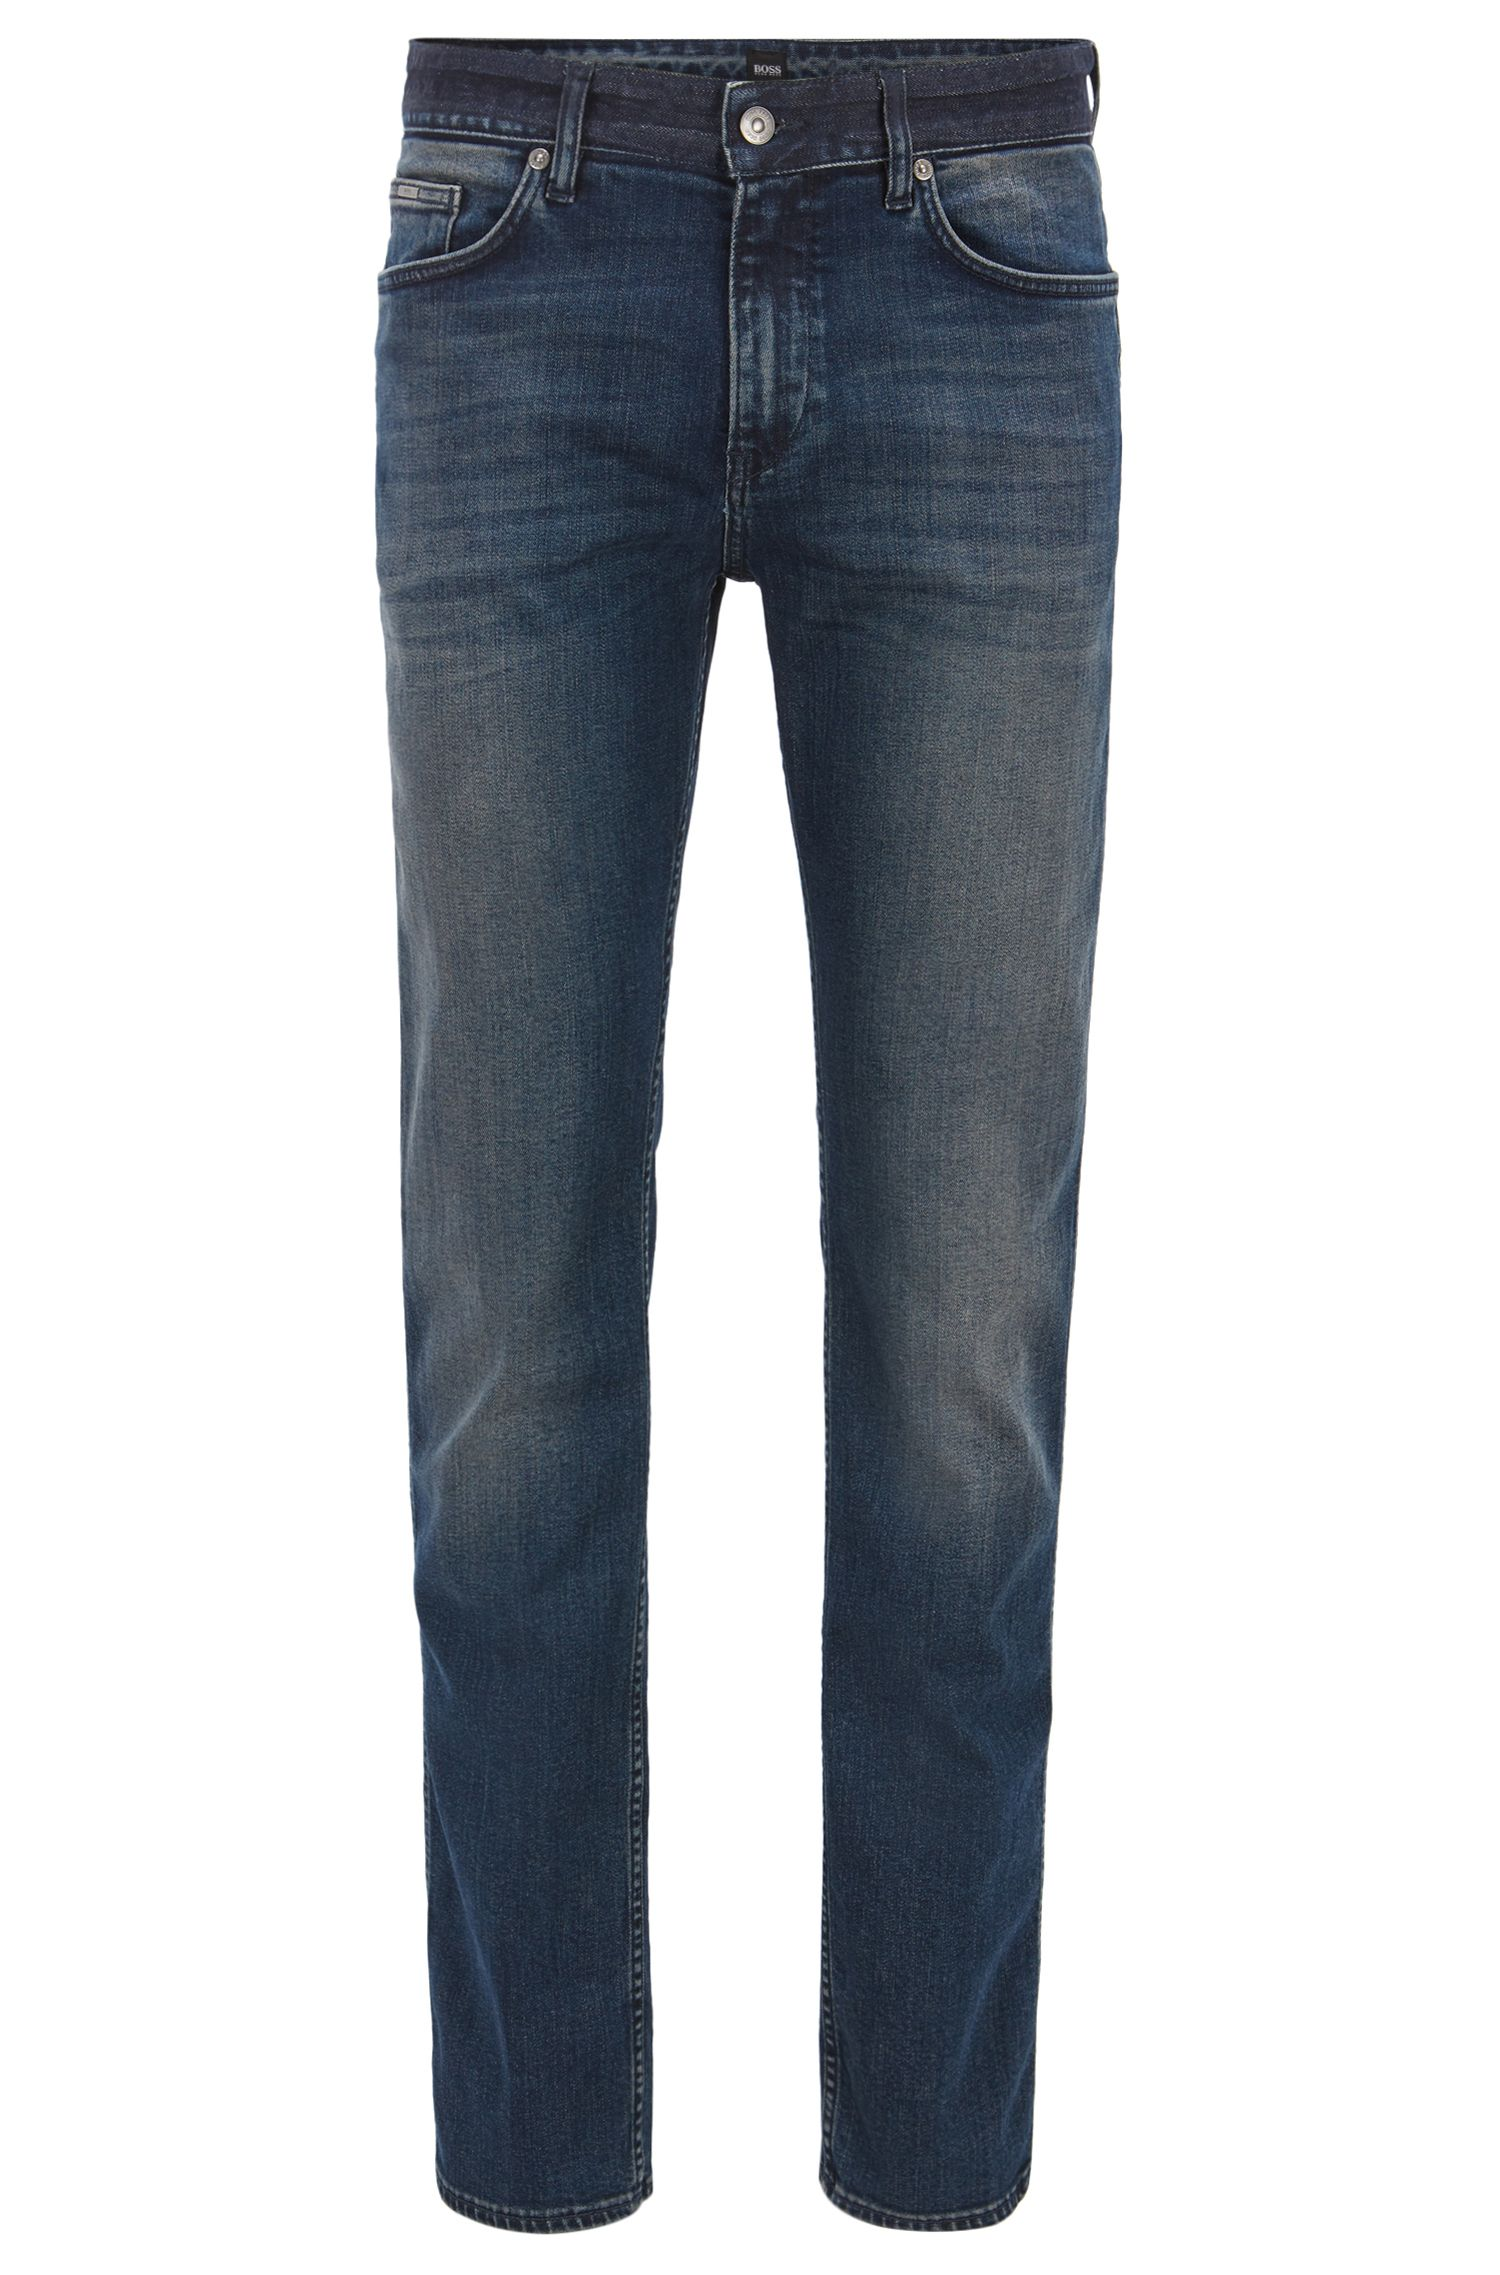 Jean Slim Fit en denim stretch authentique